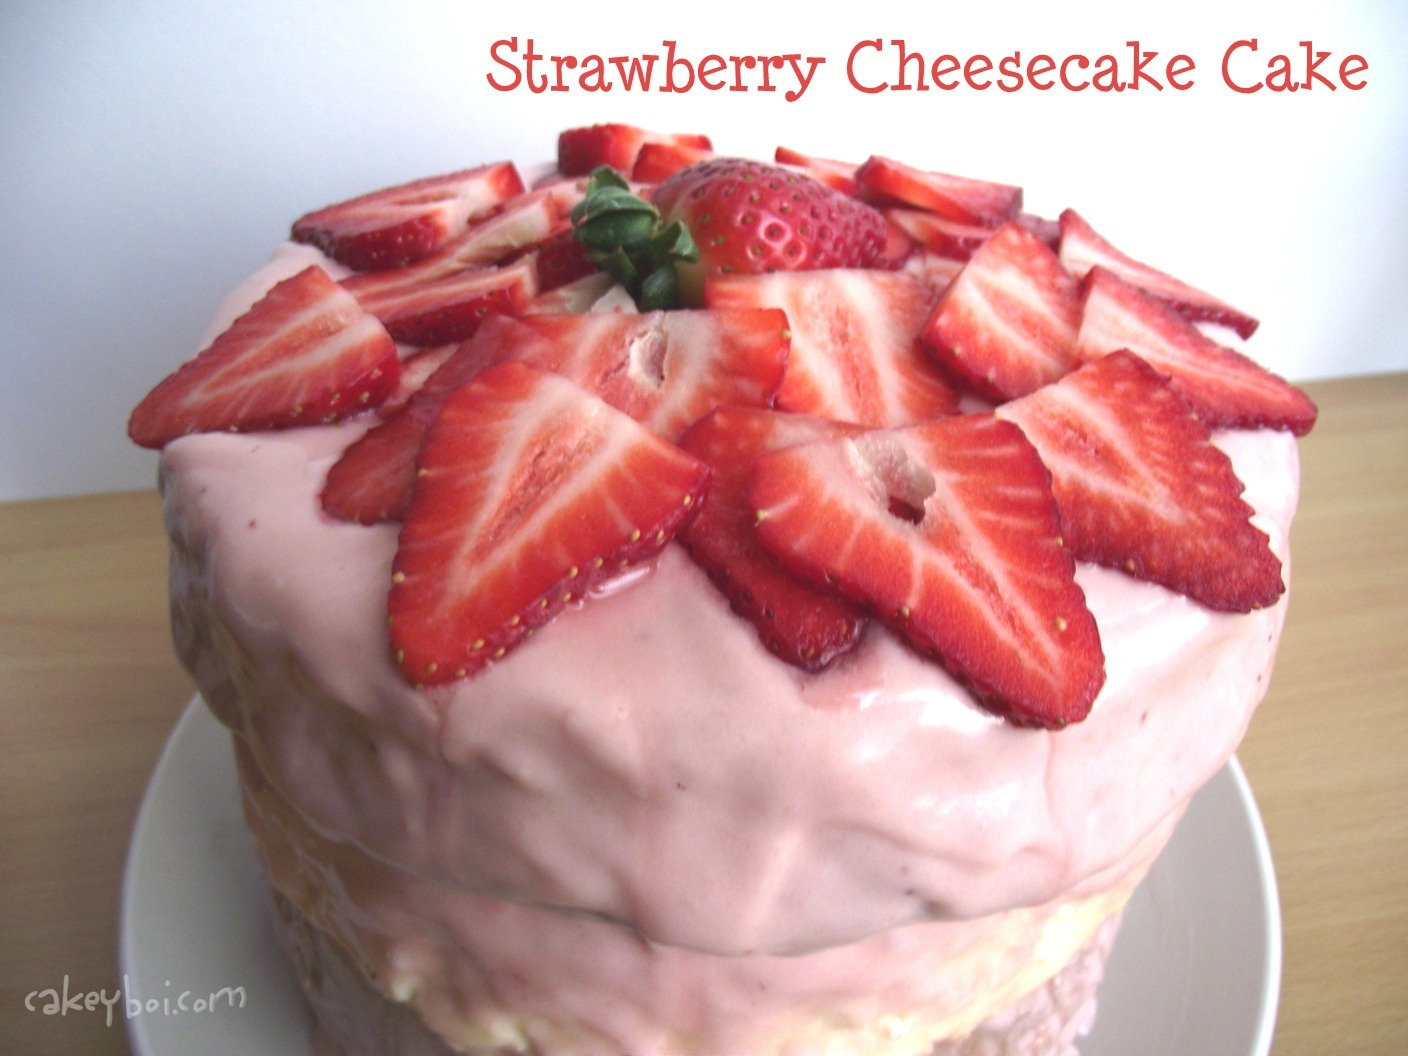 Strawberry Cheesecake Cake for Cake Club